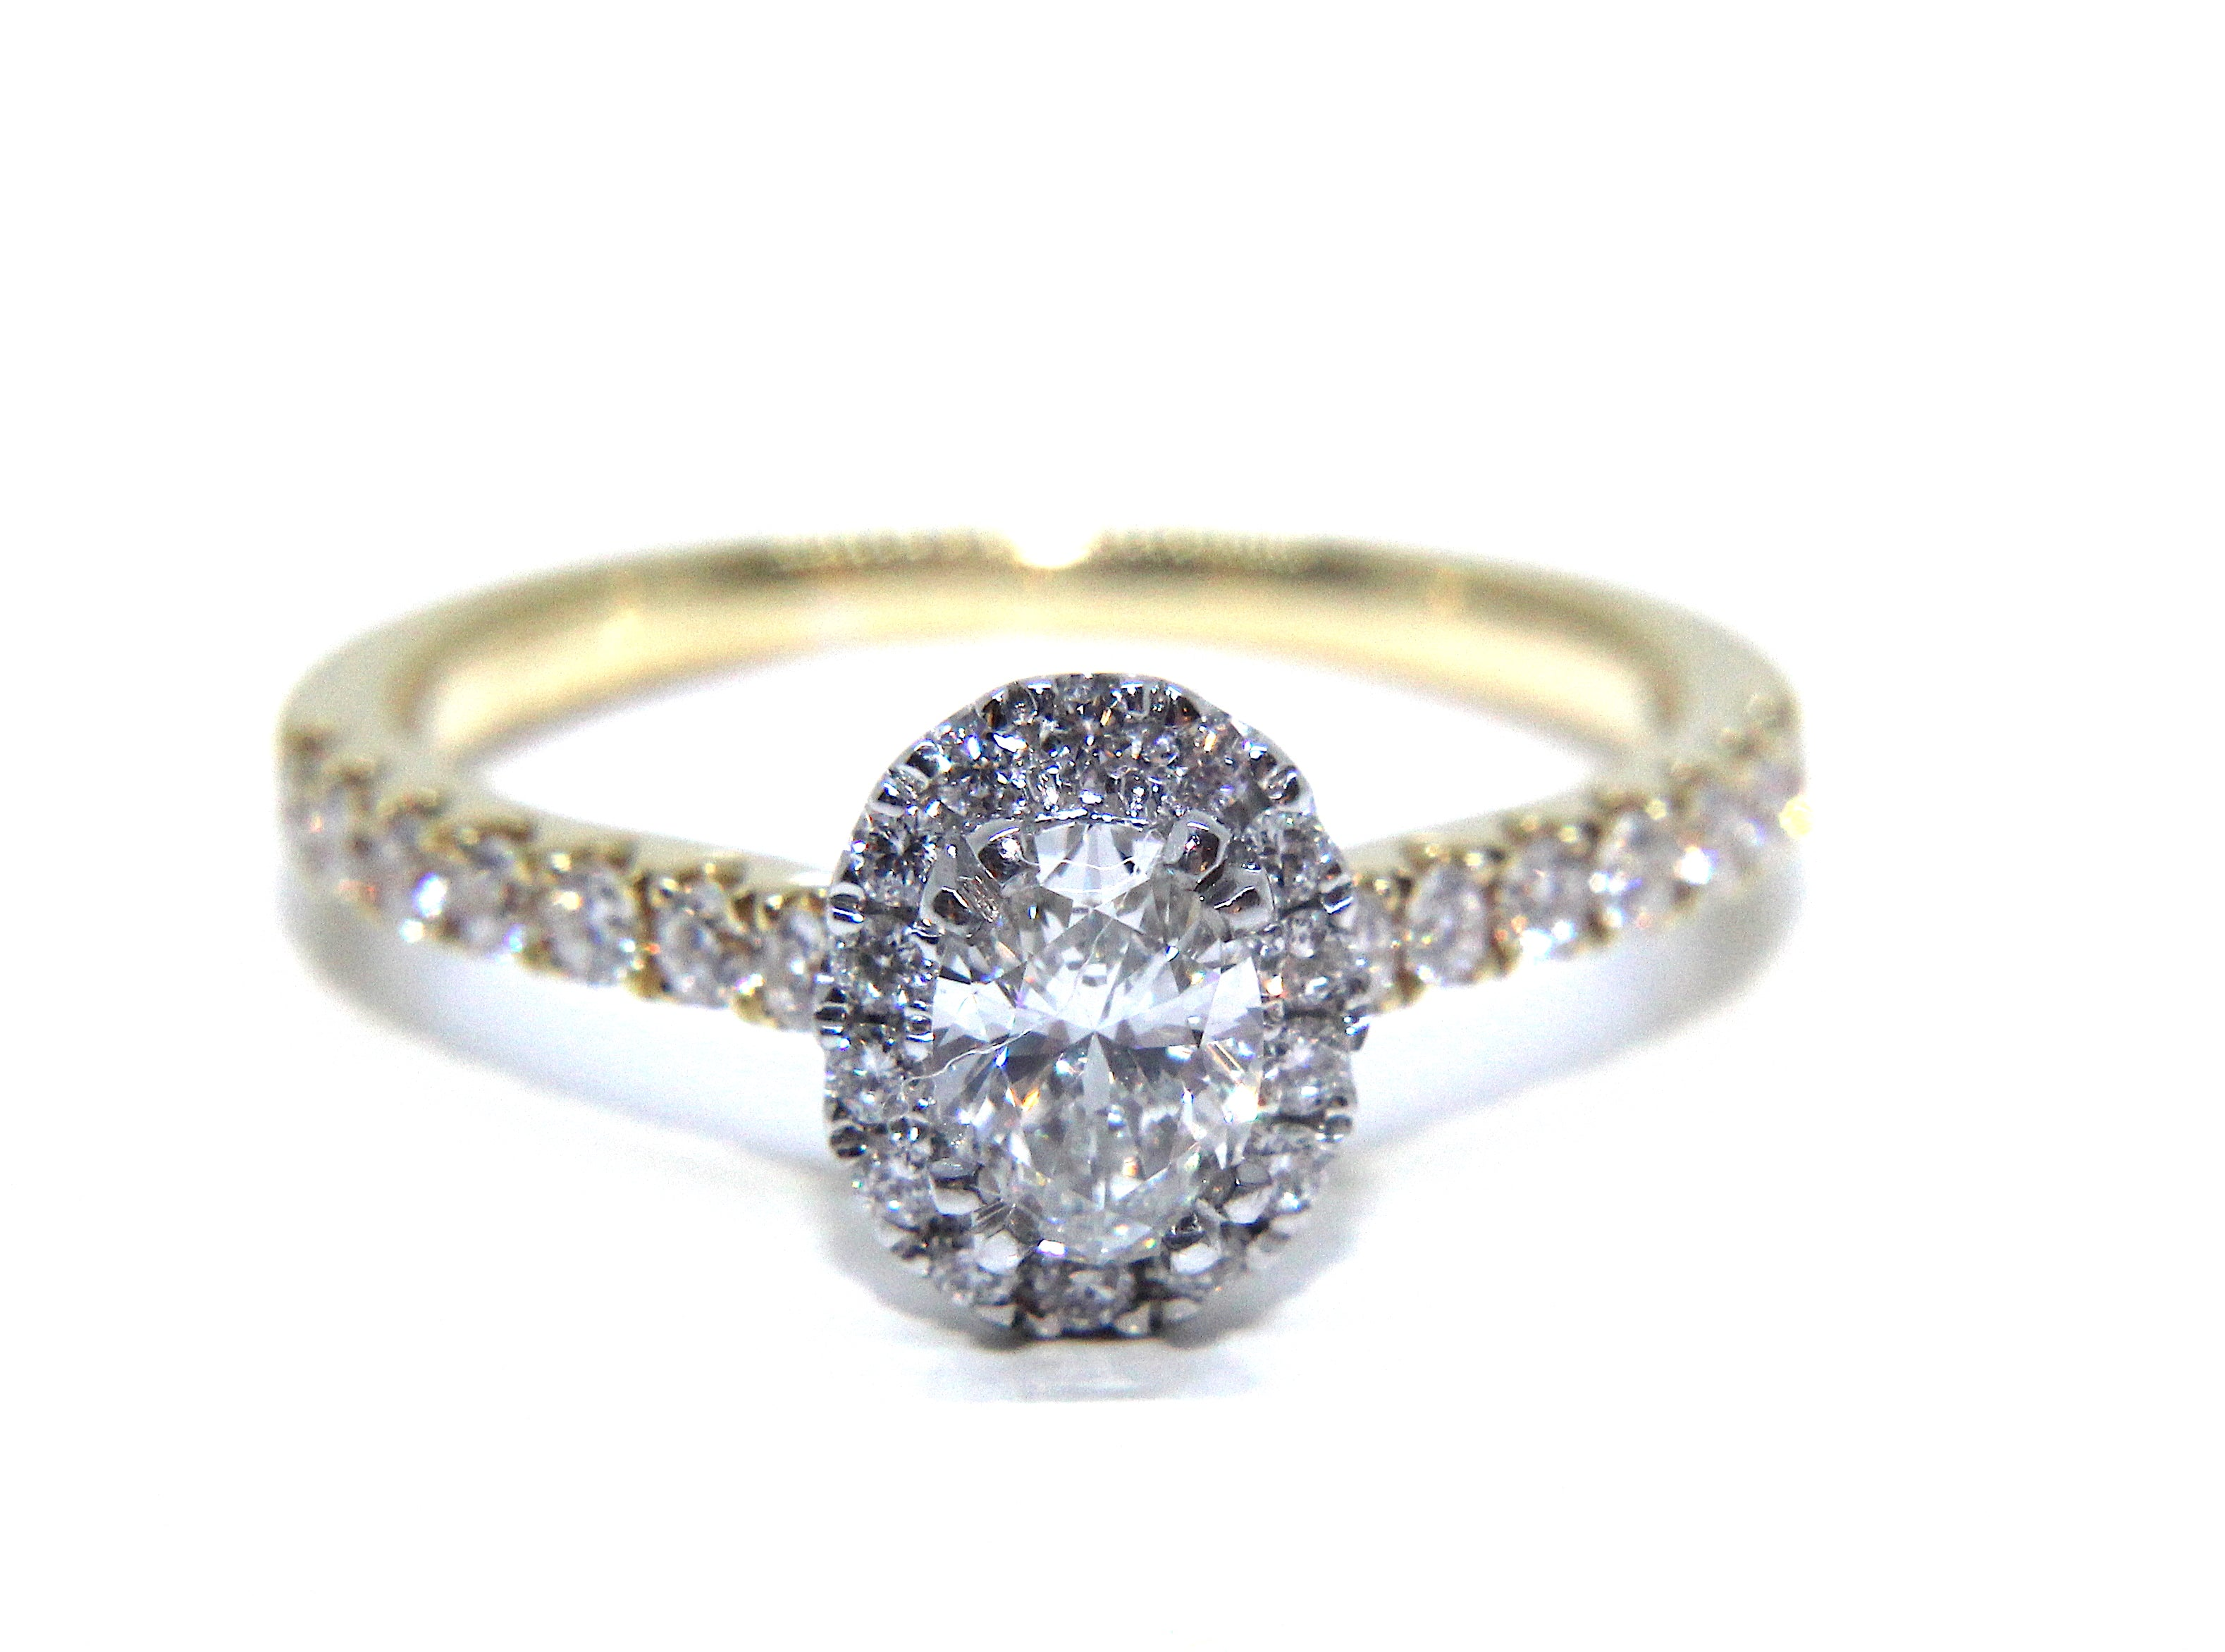 products ring crescent collections ov rings ht engagement tacori petite oval l miller brent